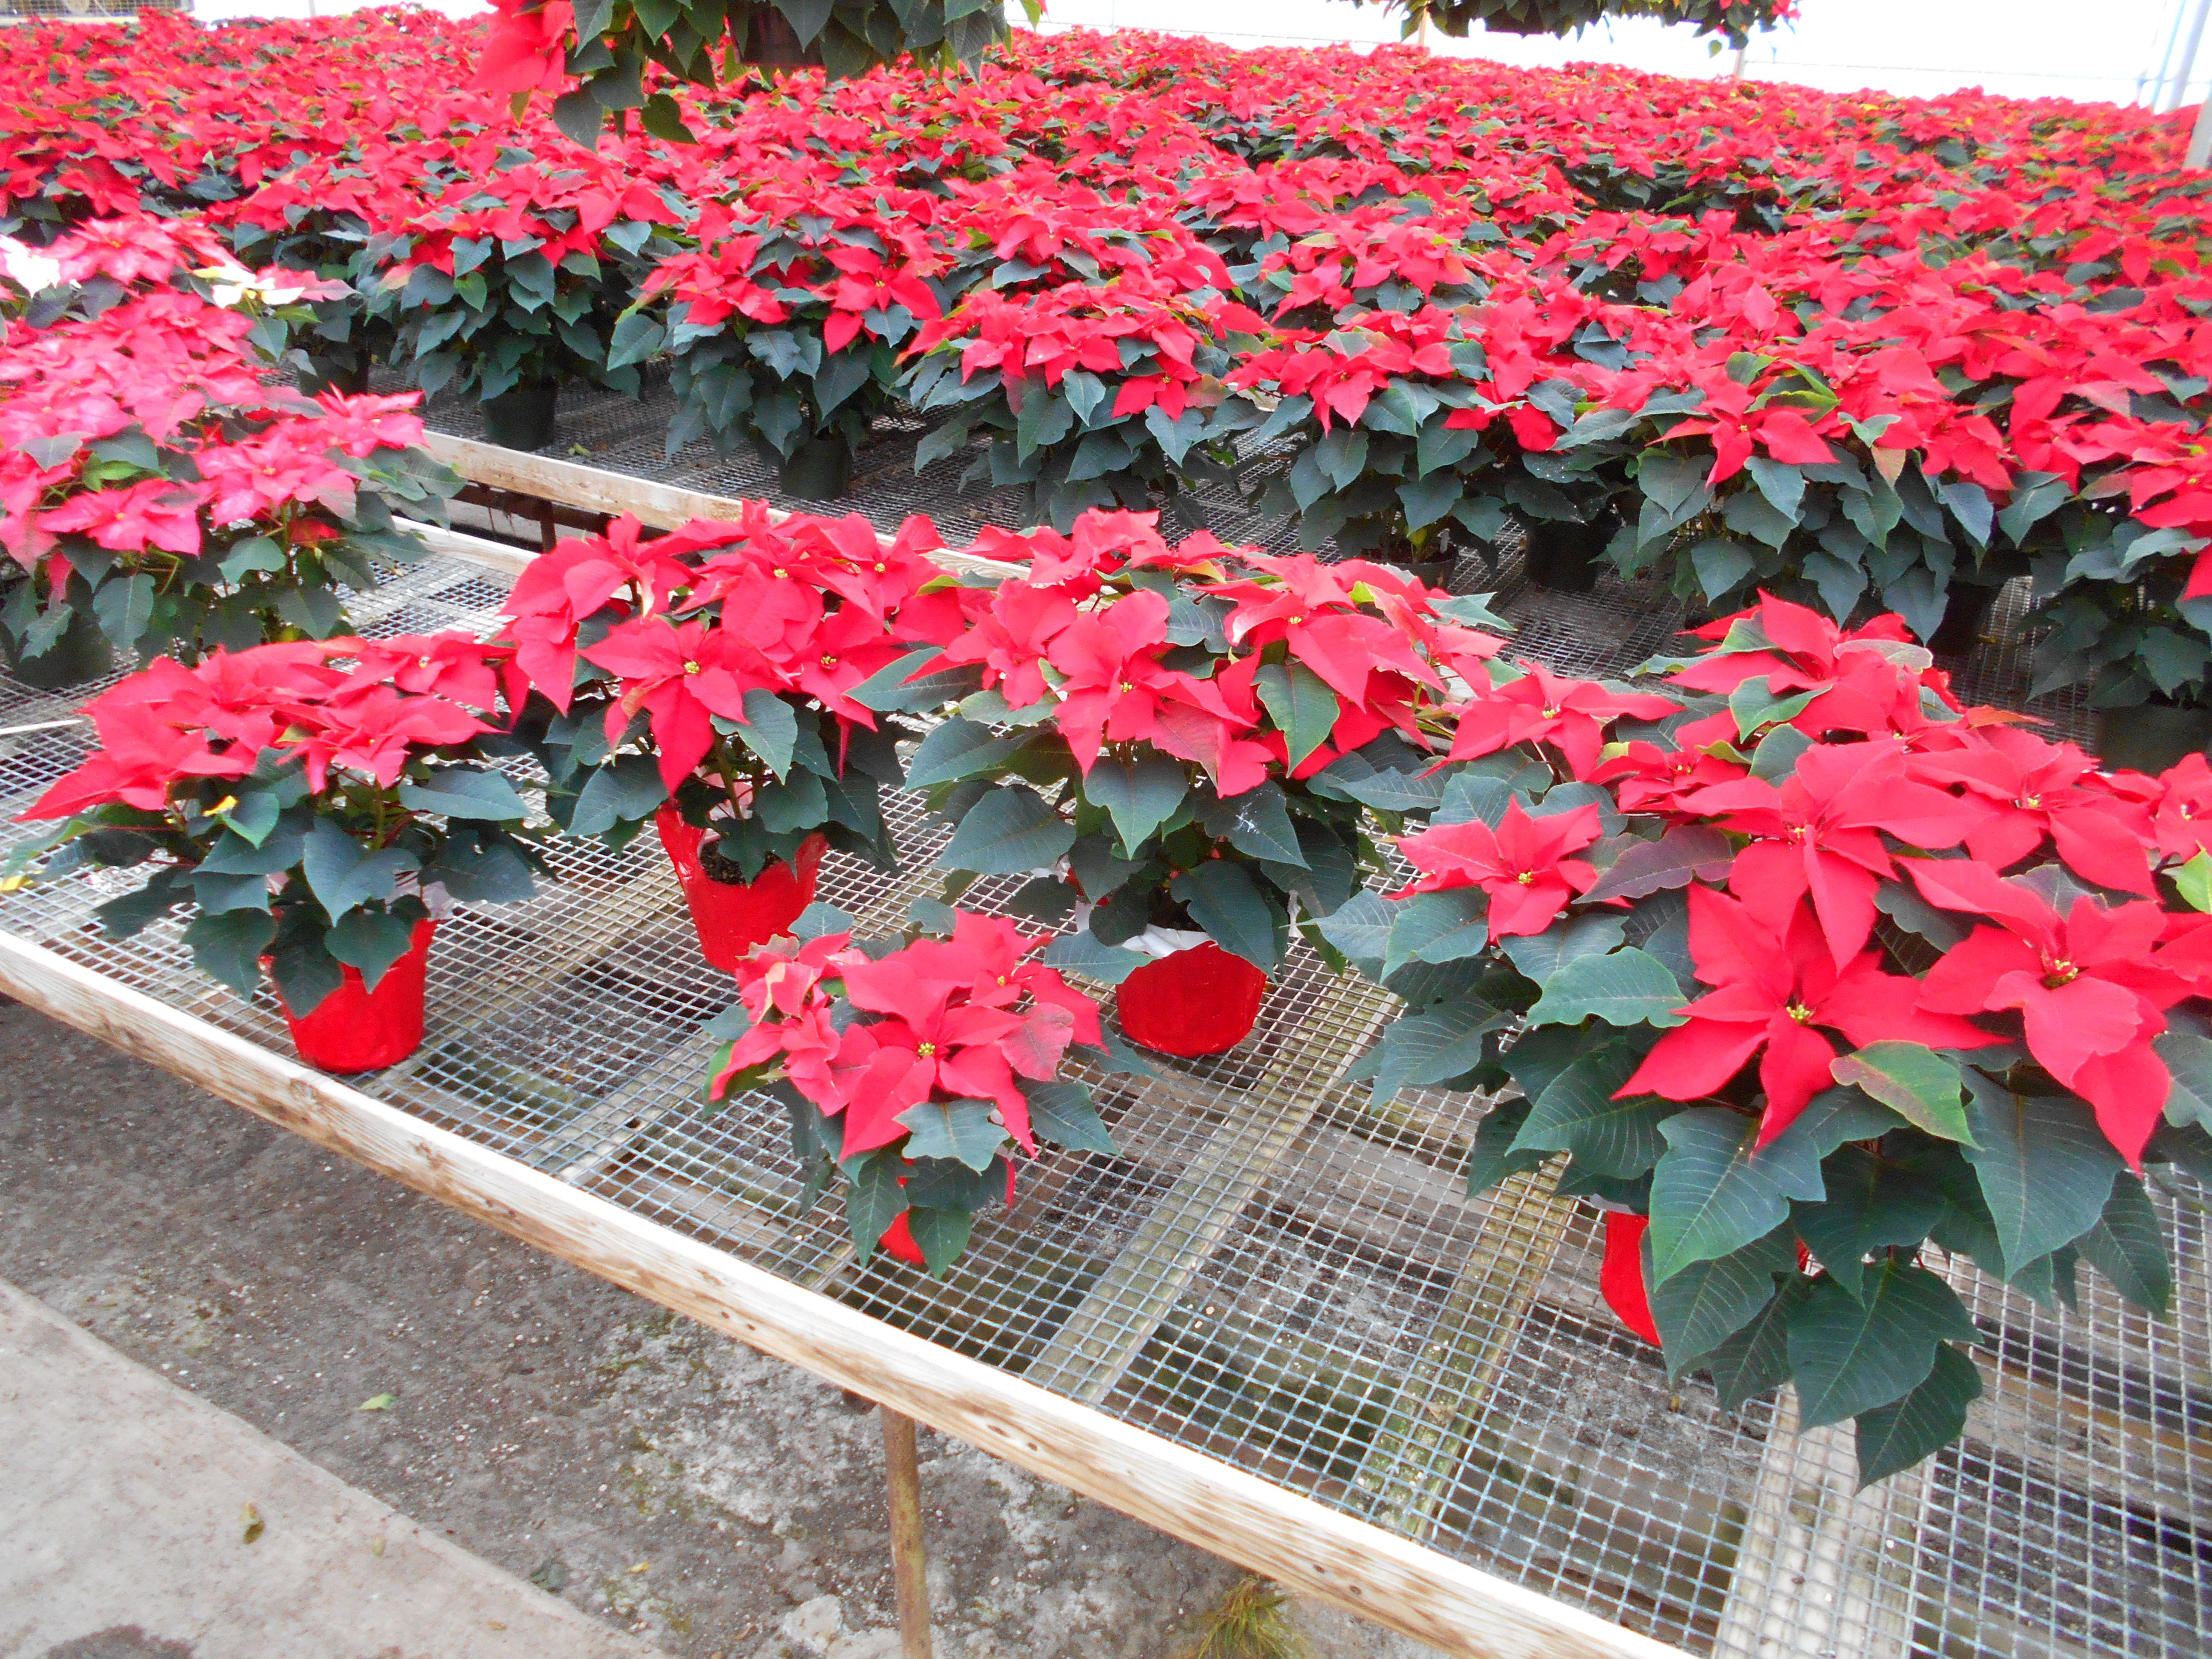 Comparing Sizes Our Single Plant In A 6 1 2 Inch Pot Poinsettias Are Graded By Bloom Count Either 5 6 Or 7 8 Blooms Likewise Our L Poinsettia Plants Bloom